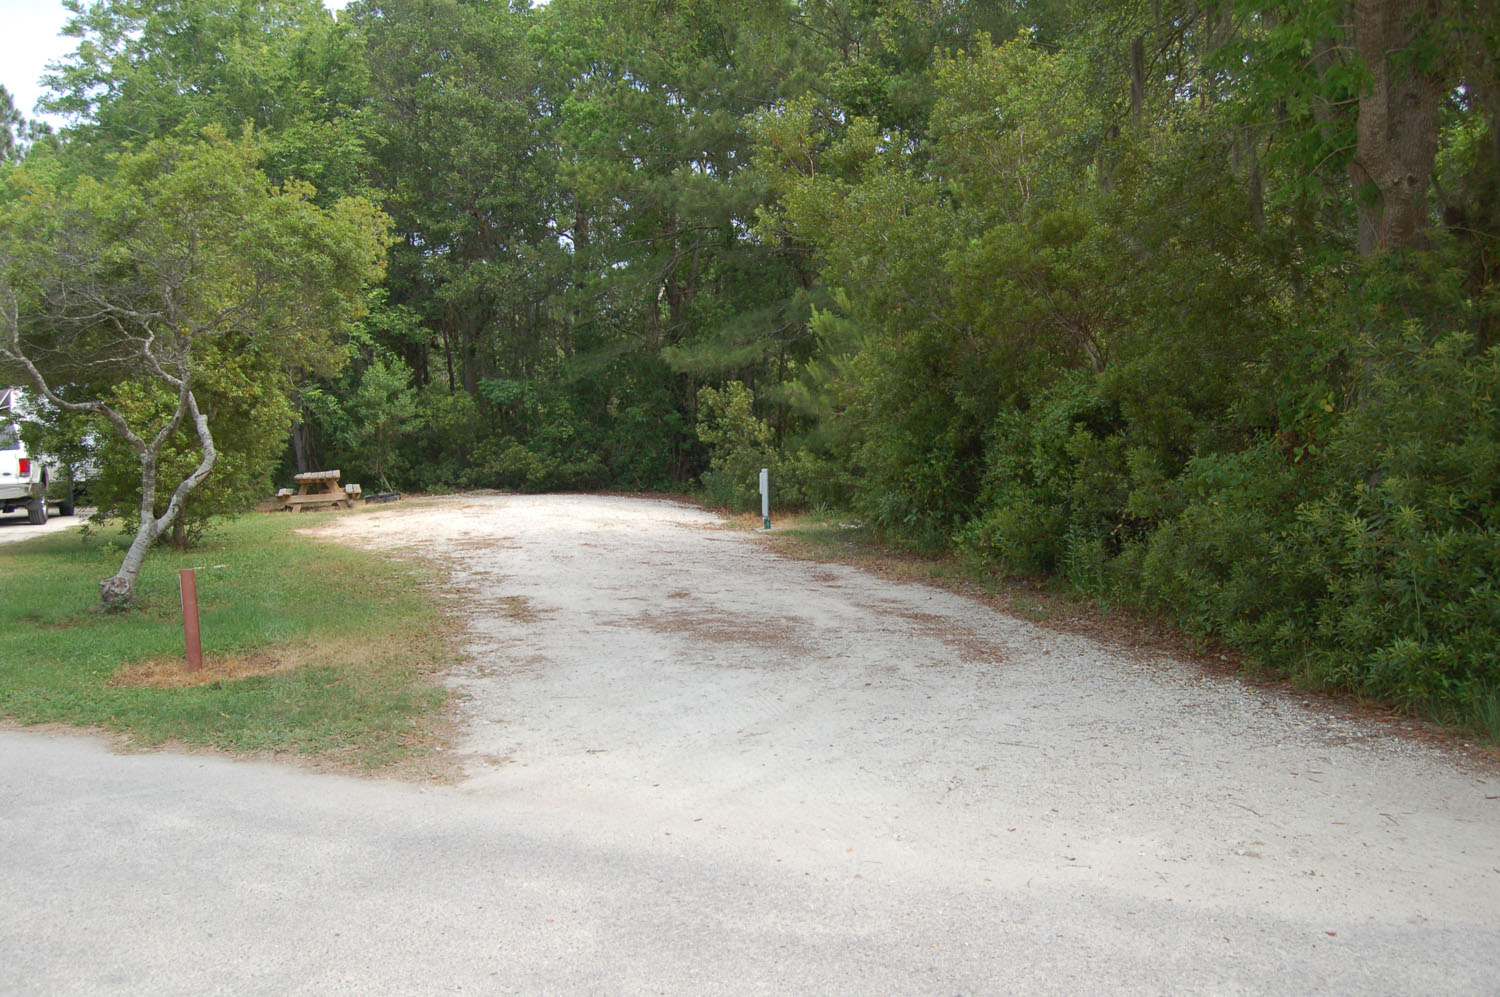 Image of campsite #52 at the Campground at James Island County Park